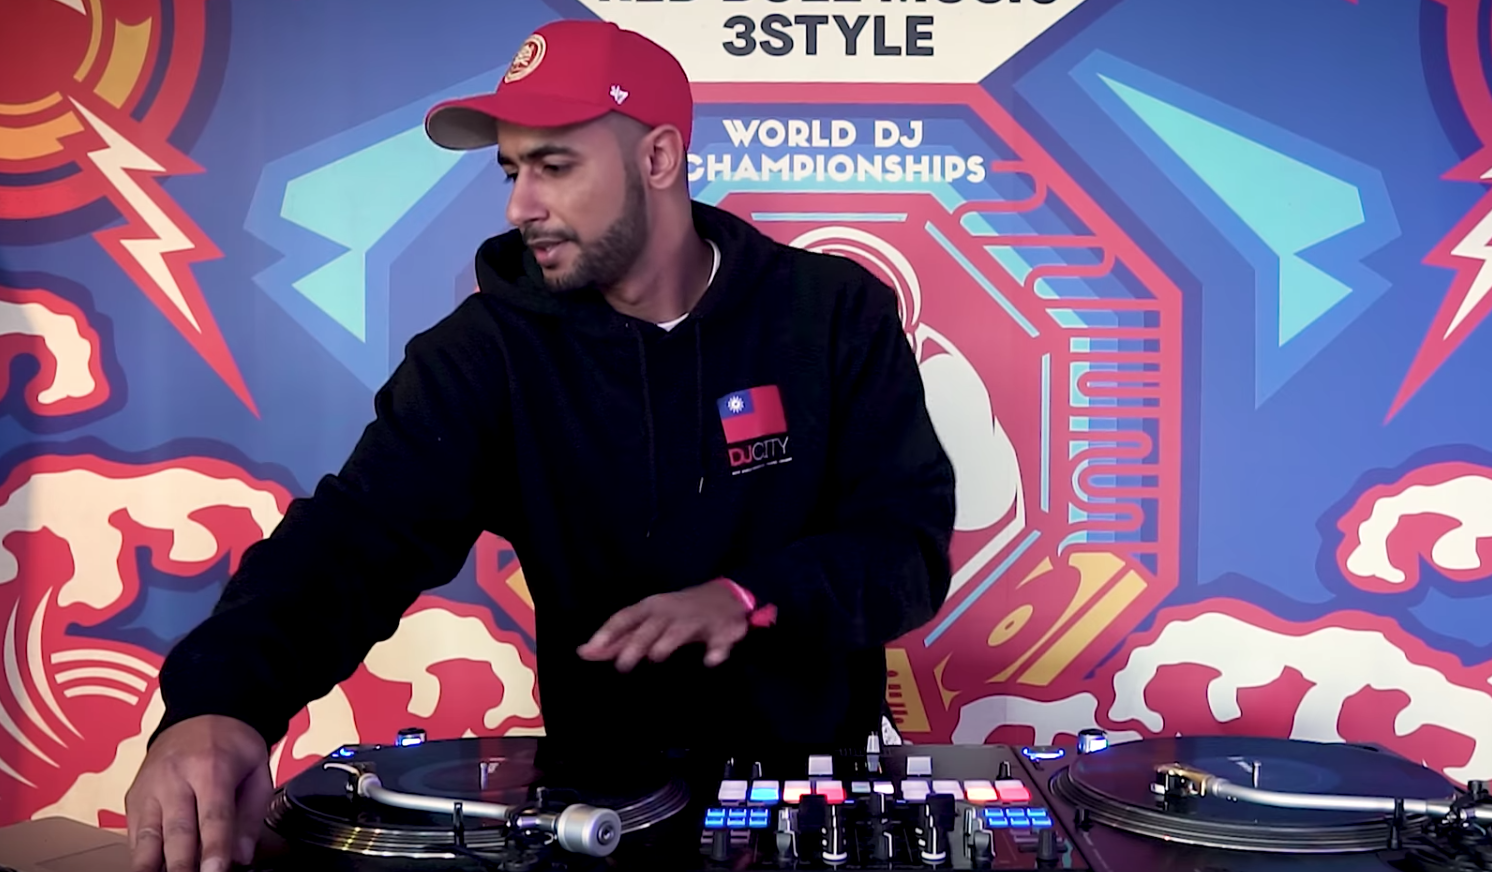 dj-hamma-red-bull-3style-video.png